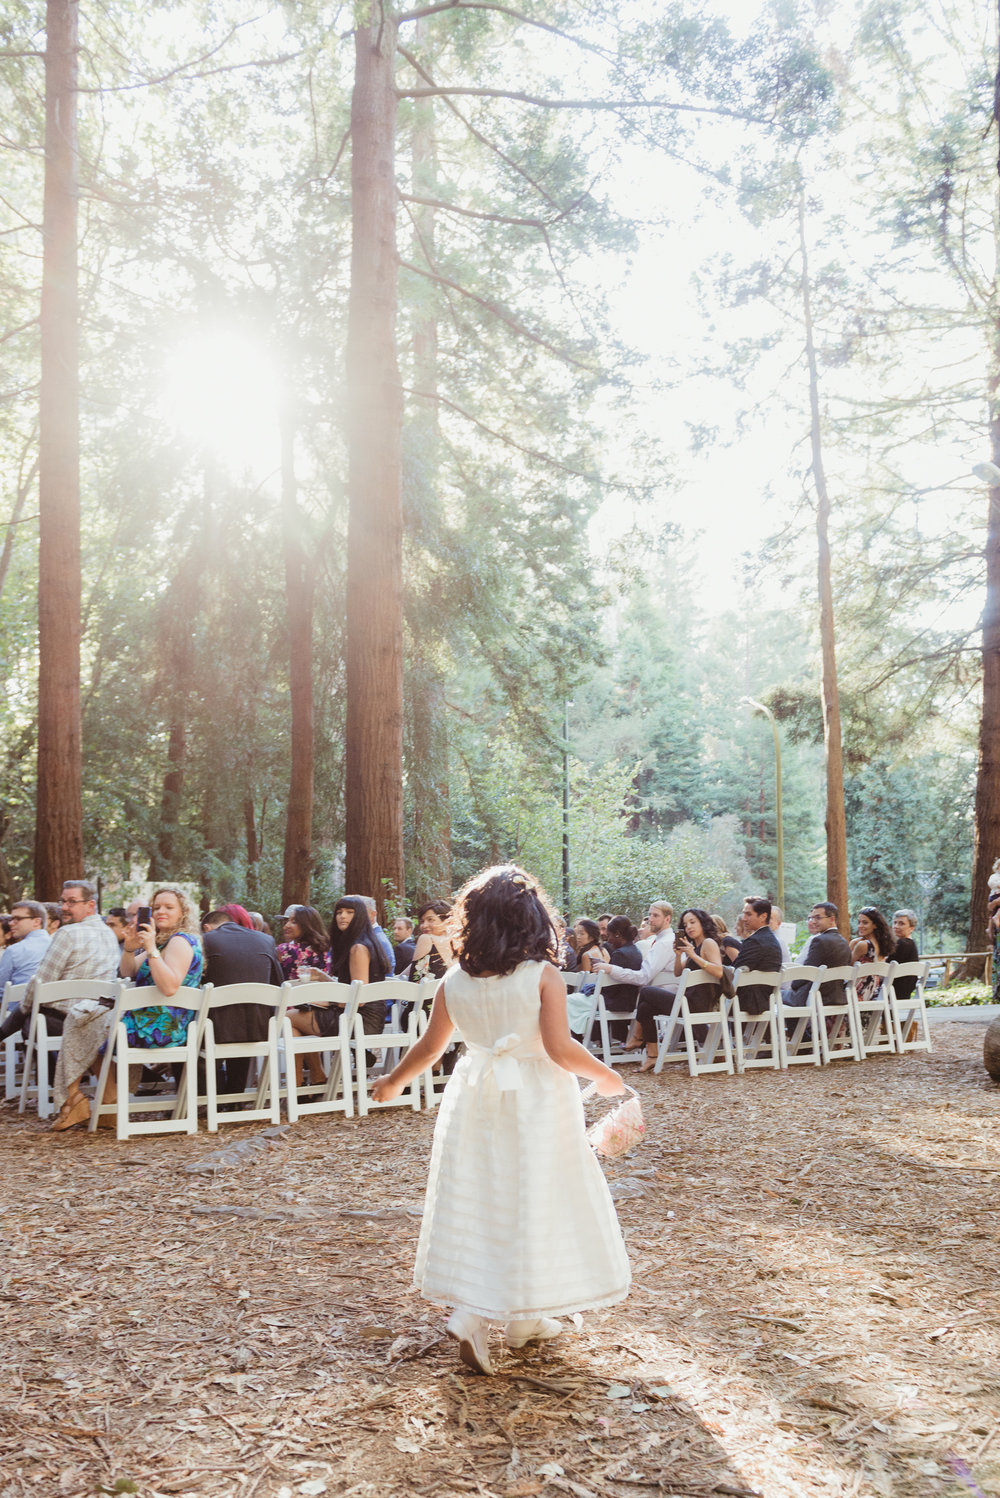 25san-francisco-stern-grove-wedding-photographer-vivianchen-199.jpg